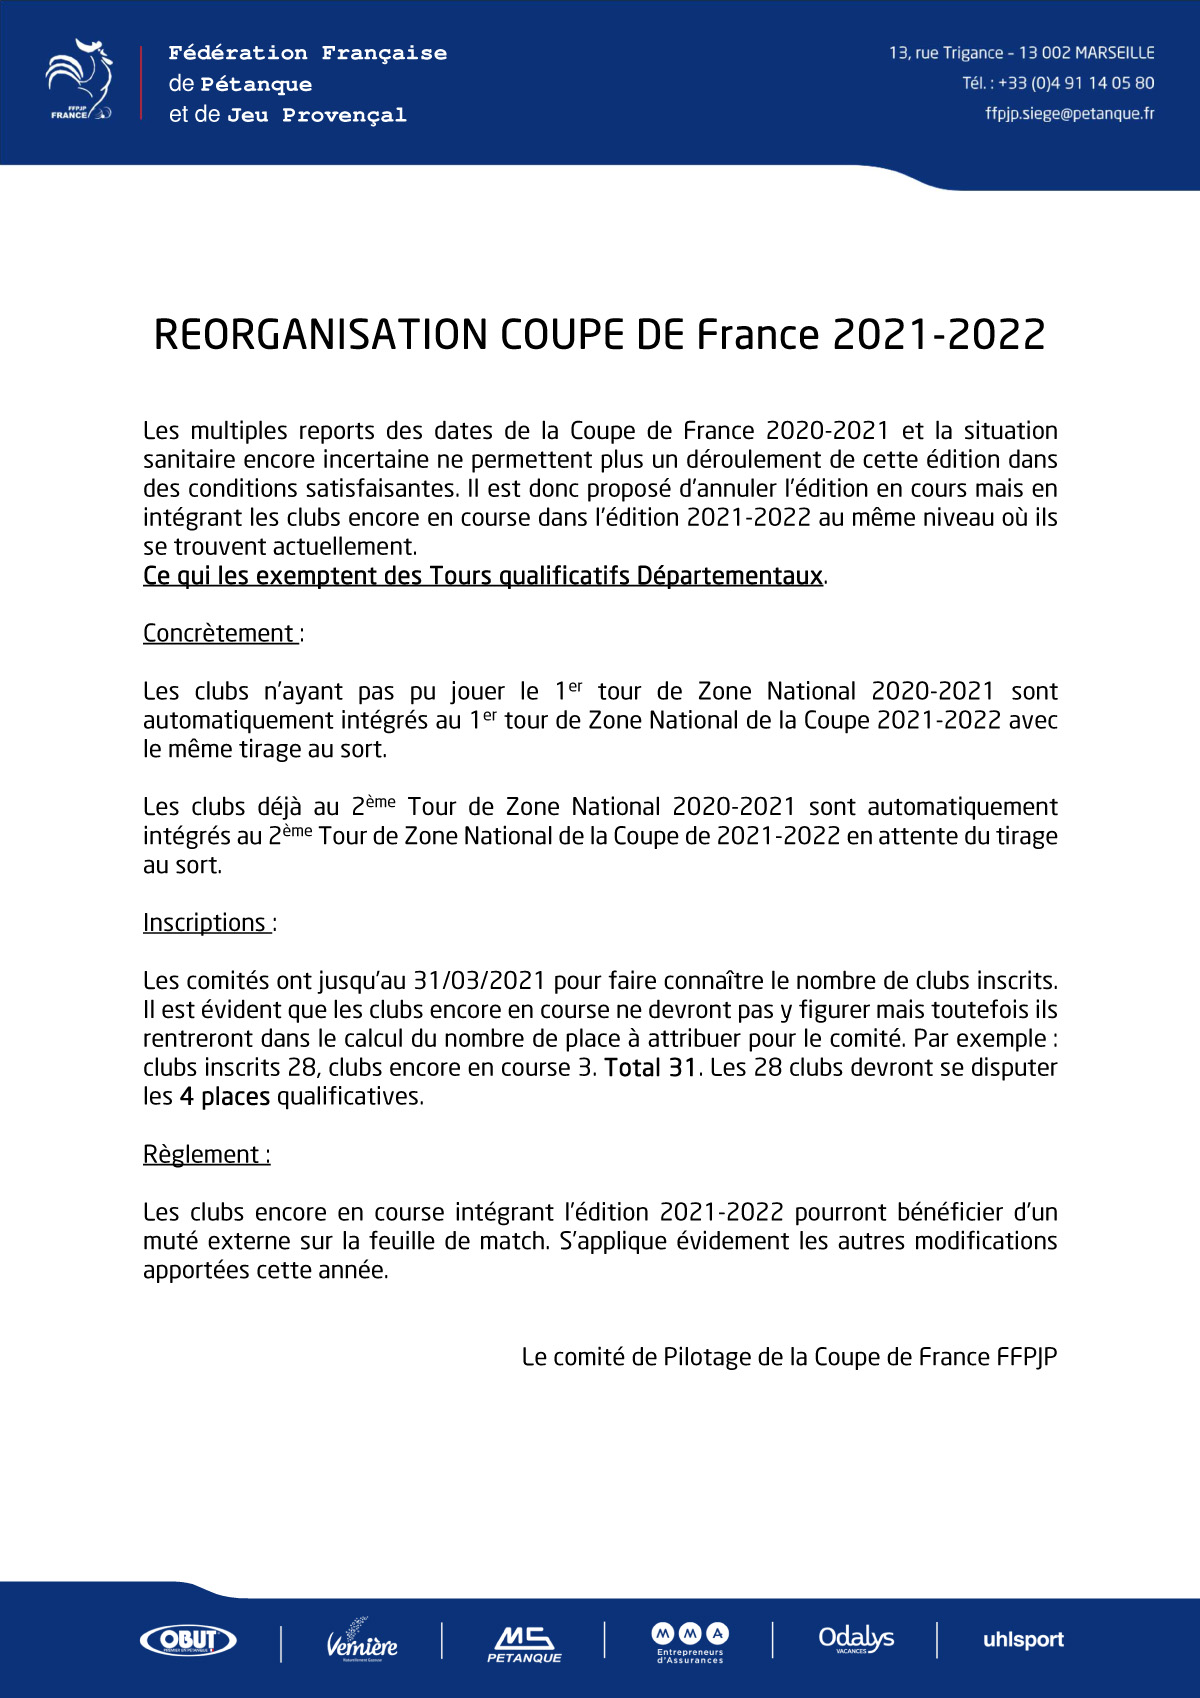 https://boulesdugard.fr/images/images/stories/CDG_2021/Rorganisation_CDF_2020-2021_1.jpg